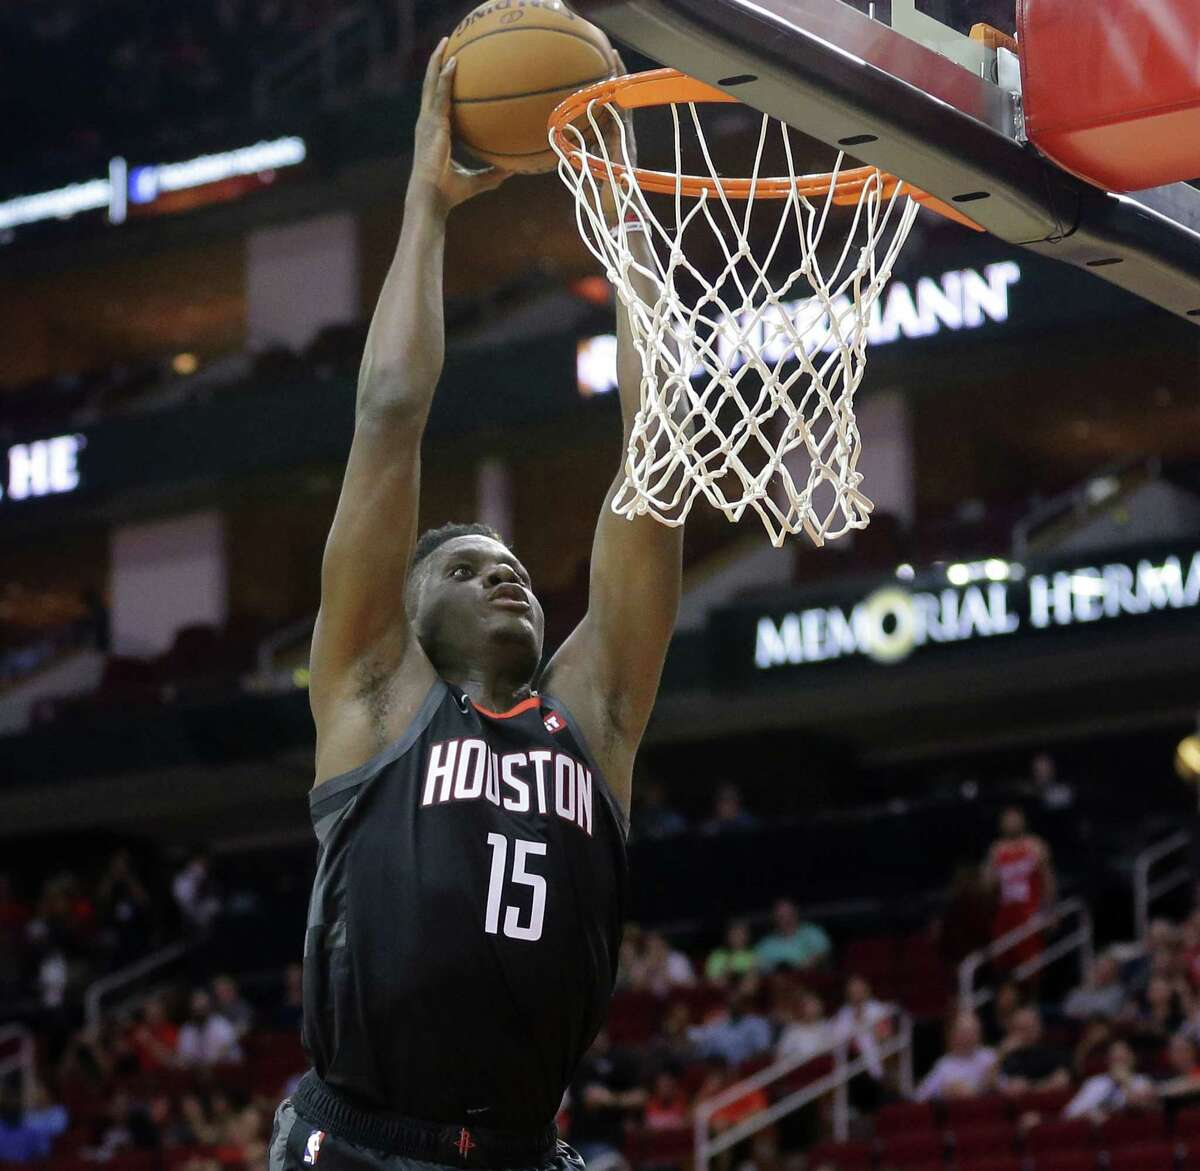 HOUSTON, TEXAS - SEPTEMBER 30: Clint Capela #15 of the Houston Rockets dunks against the Shanghai Sharks during the second quarter at Toyota Center on September 30, 2019 in Houston, Texas. NOTE TO USER: User expressly acknowledges and agrees that, by downloading and/or using this photograph, user is consenting to the terms and conditions of the Getty Images License Agreement.